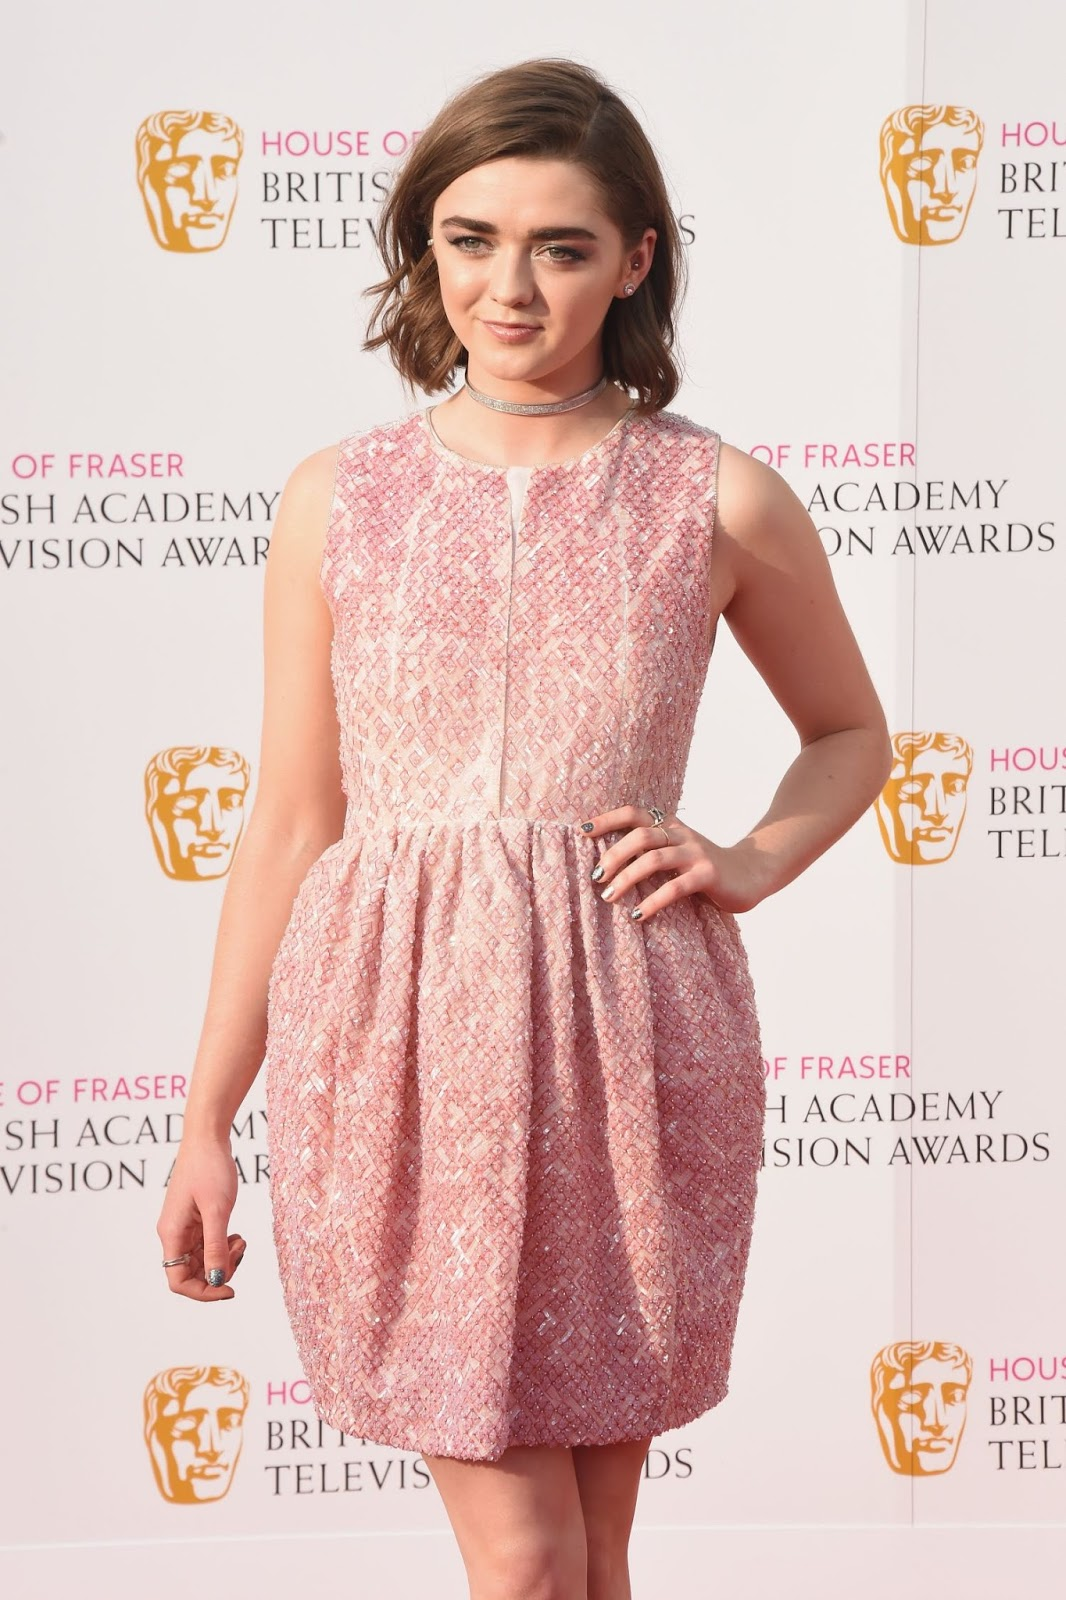 Maisie Williams at House of Fraser British Academy - Photo Maisie Williams 2016